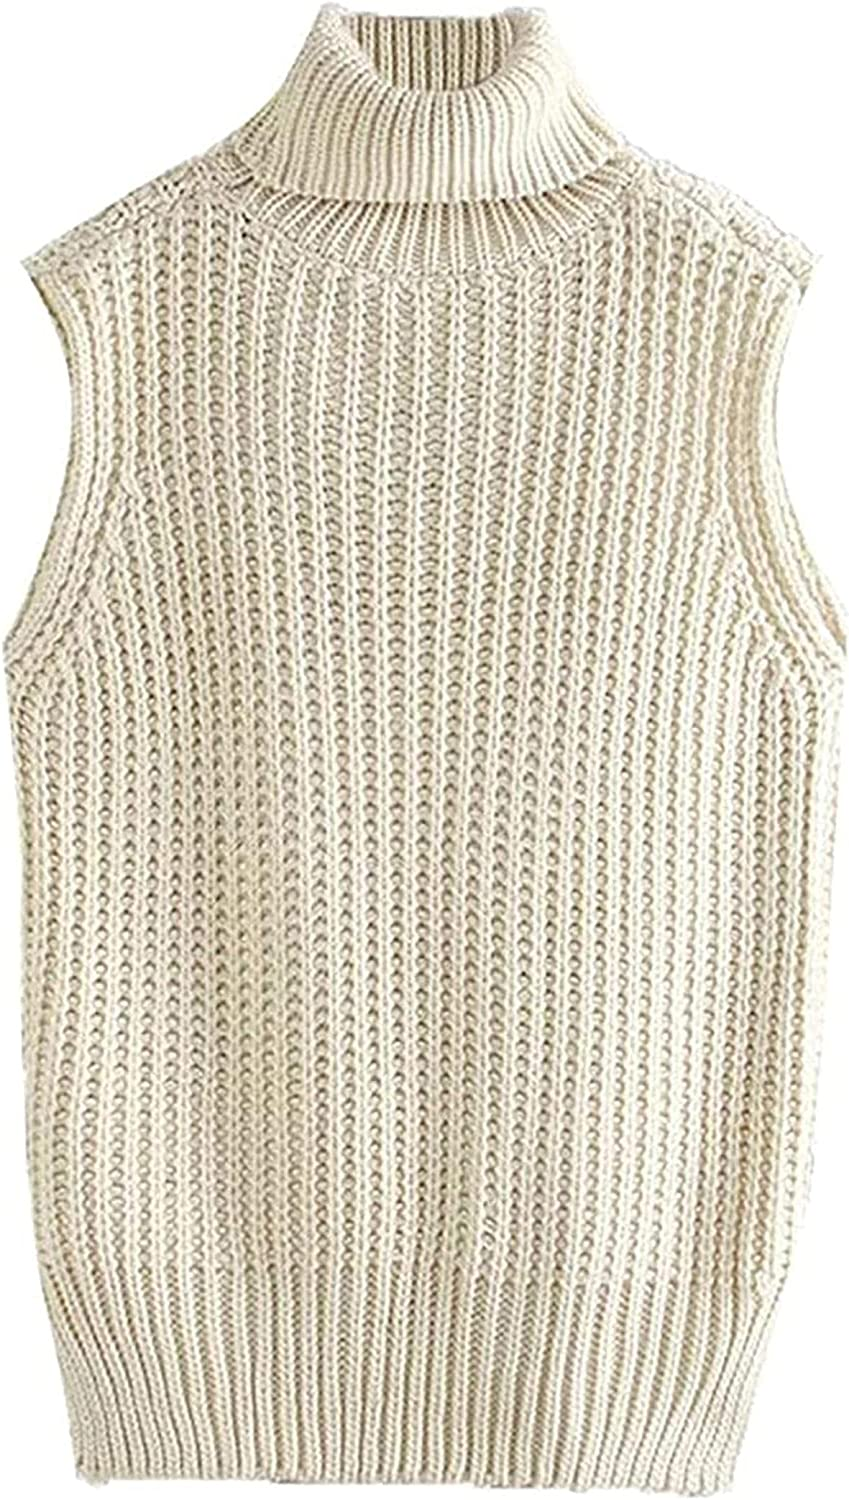 Women Fashion Loose Max 85% OFF Cable-Knit Vest Sweater High Vintage Neck Sl Fresno Mall